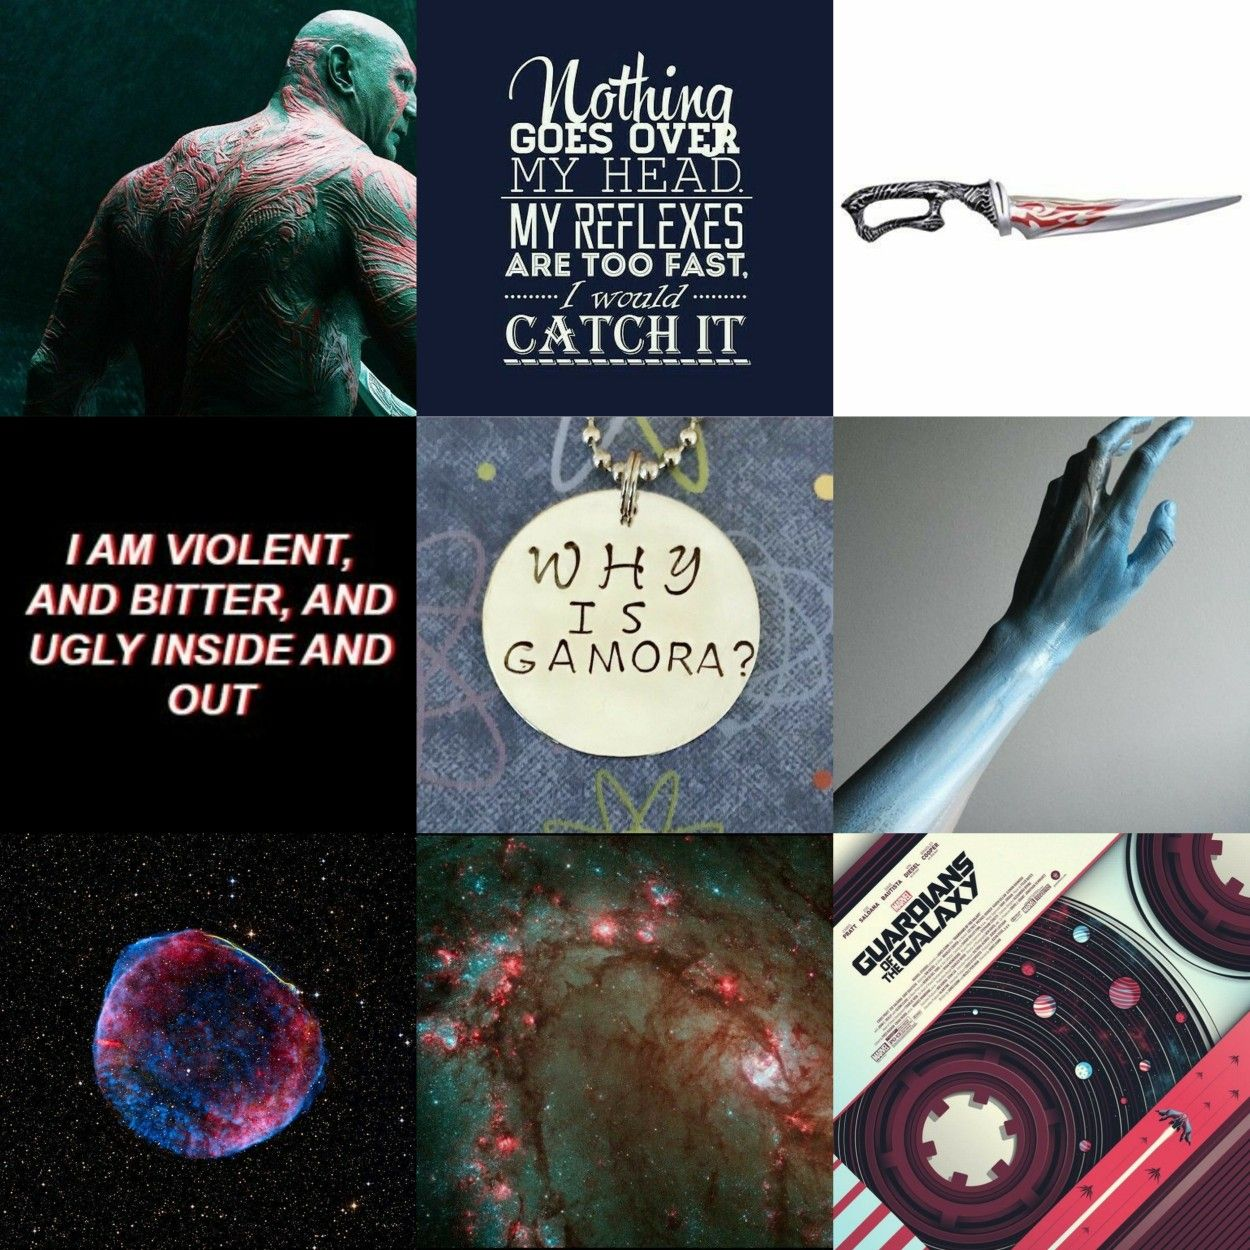 Drax The Destroyer Got G Aesthetics Avengers Pictures Avengers Quotes Avengers Funny